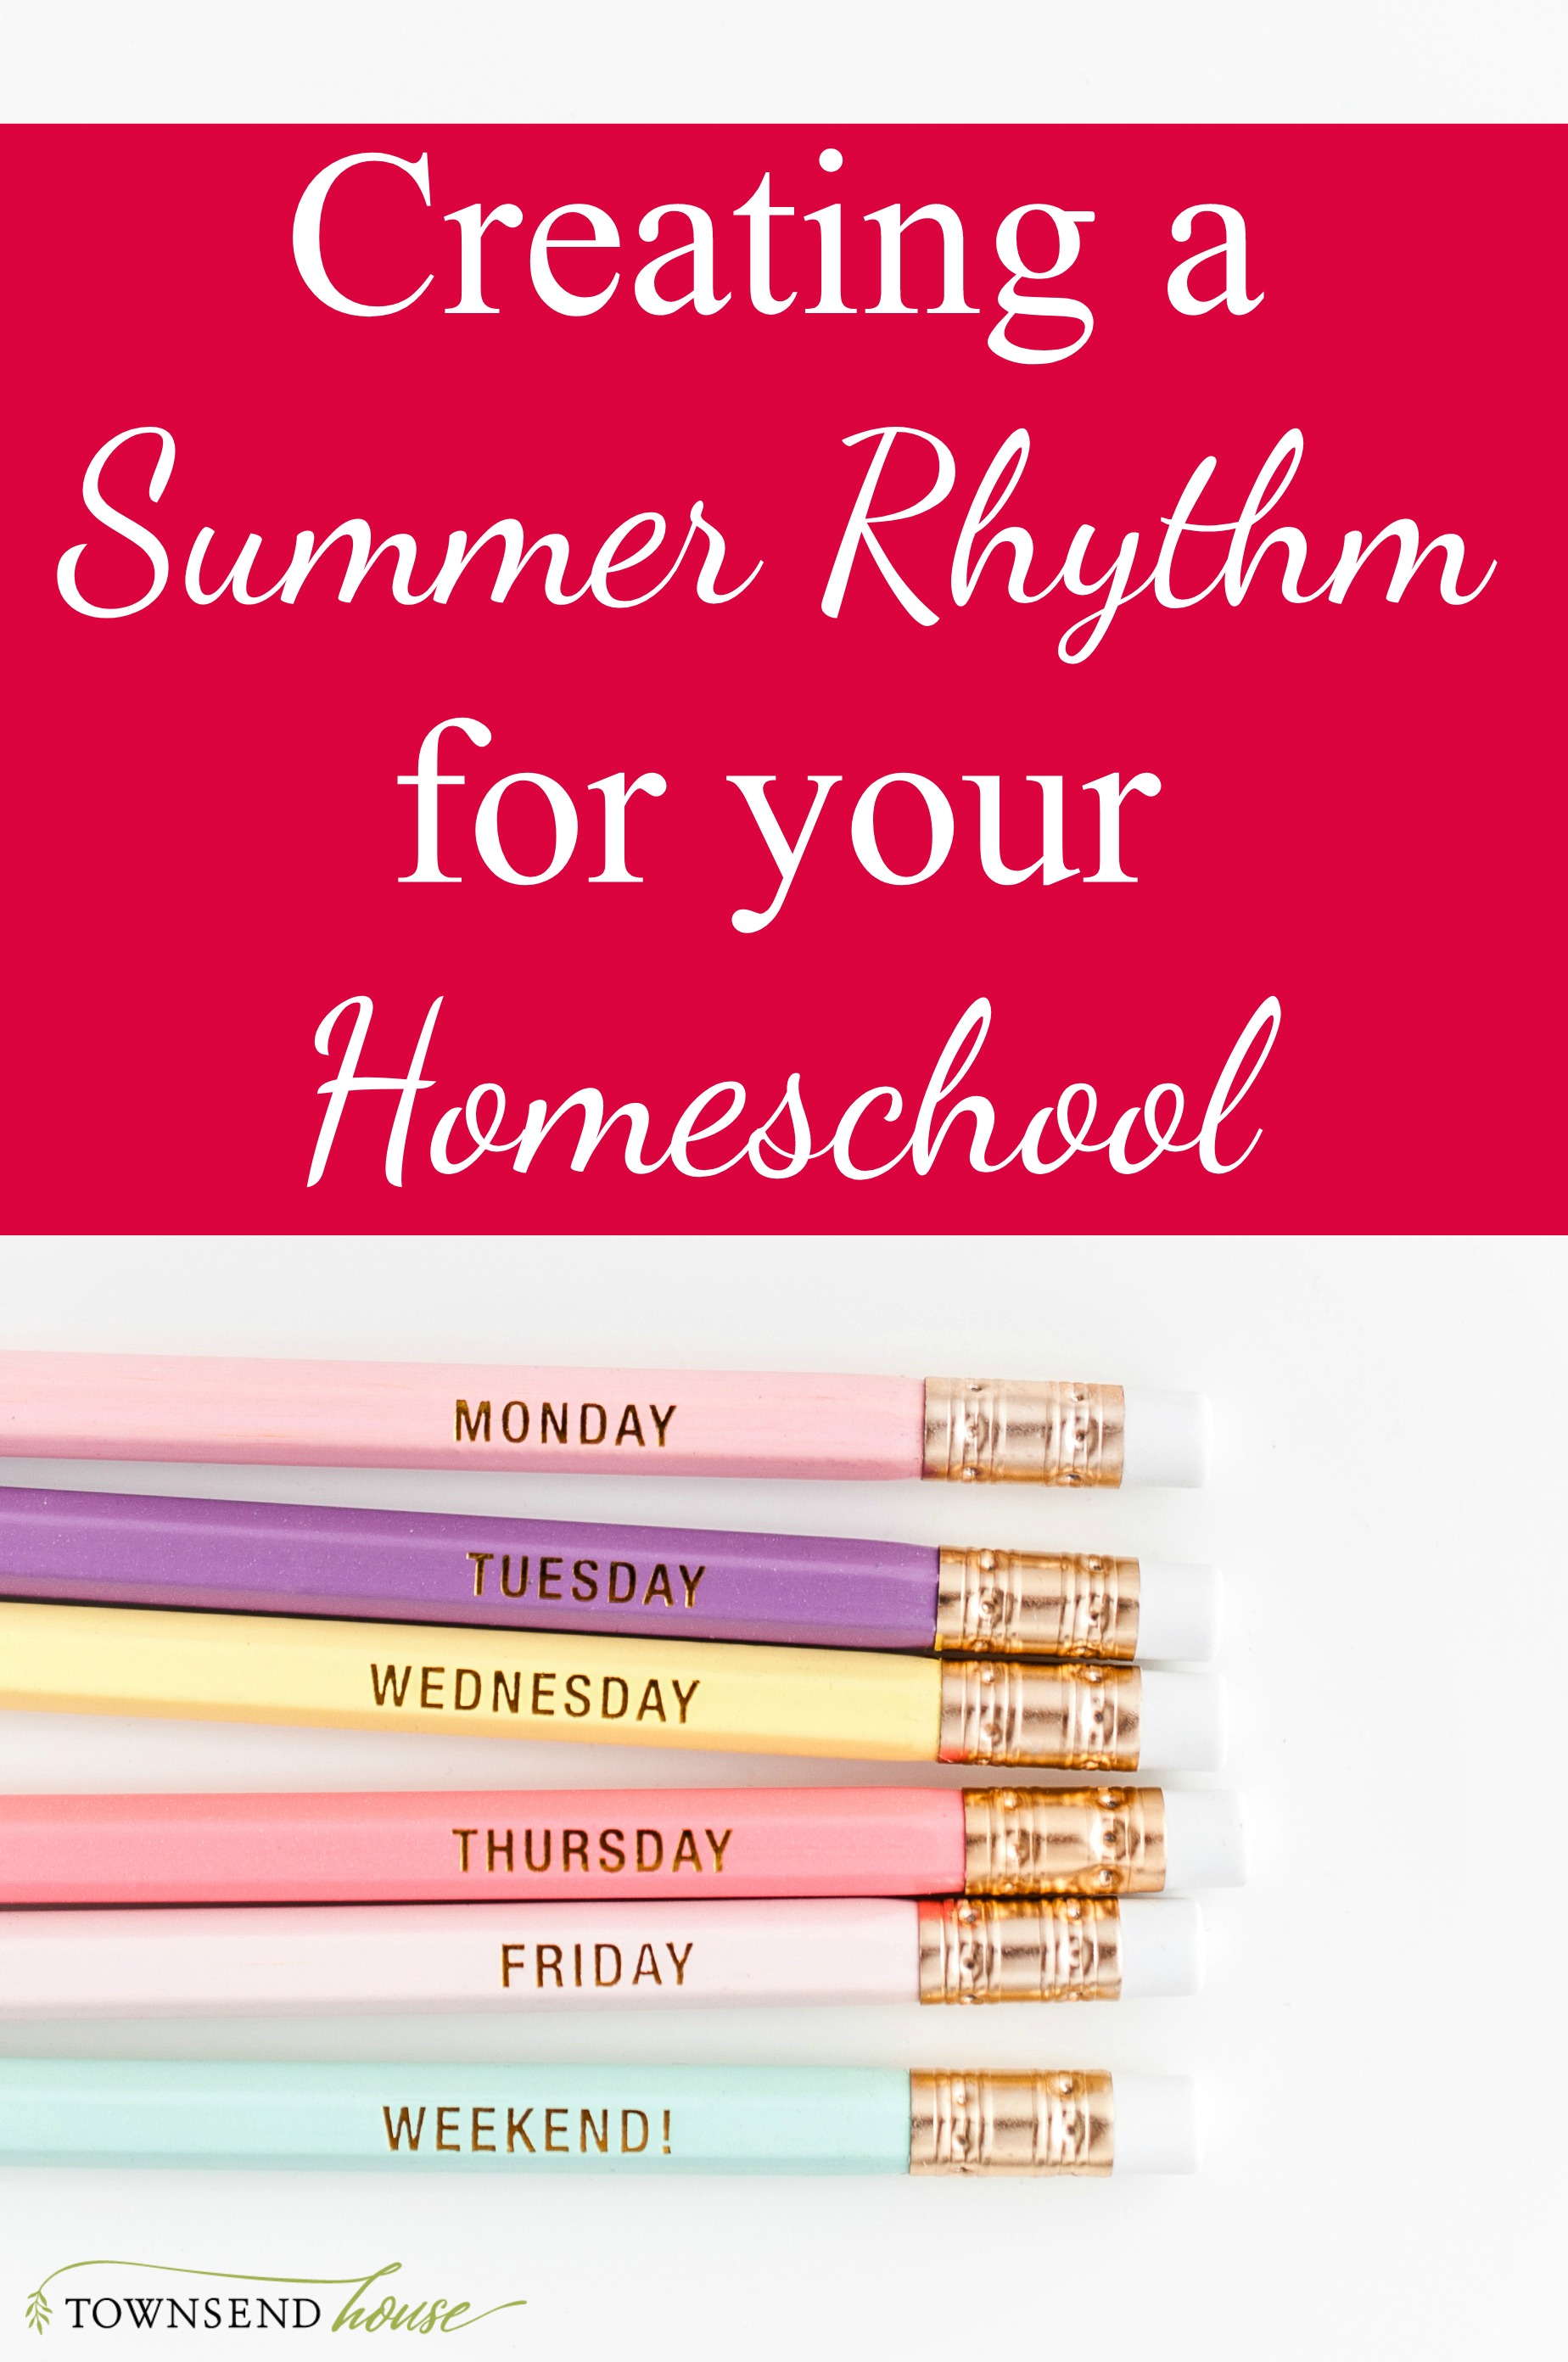 Creating a Summer Rhythm for your Homeschool